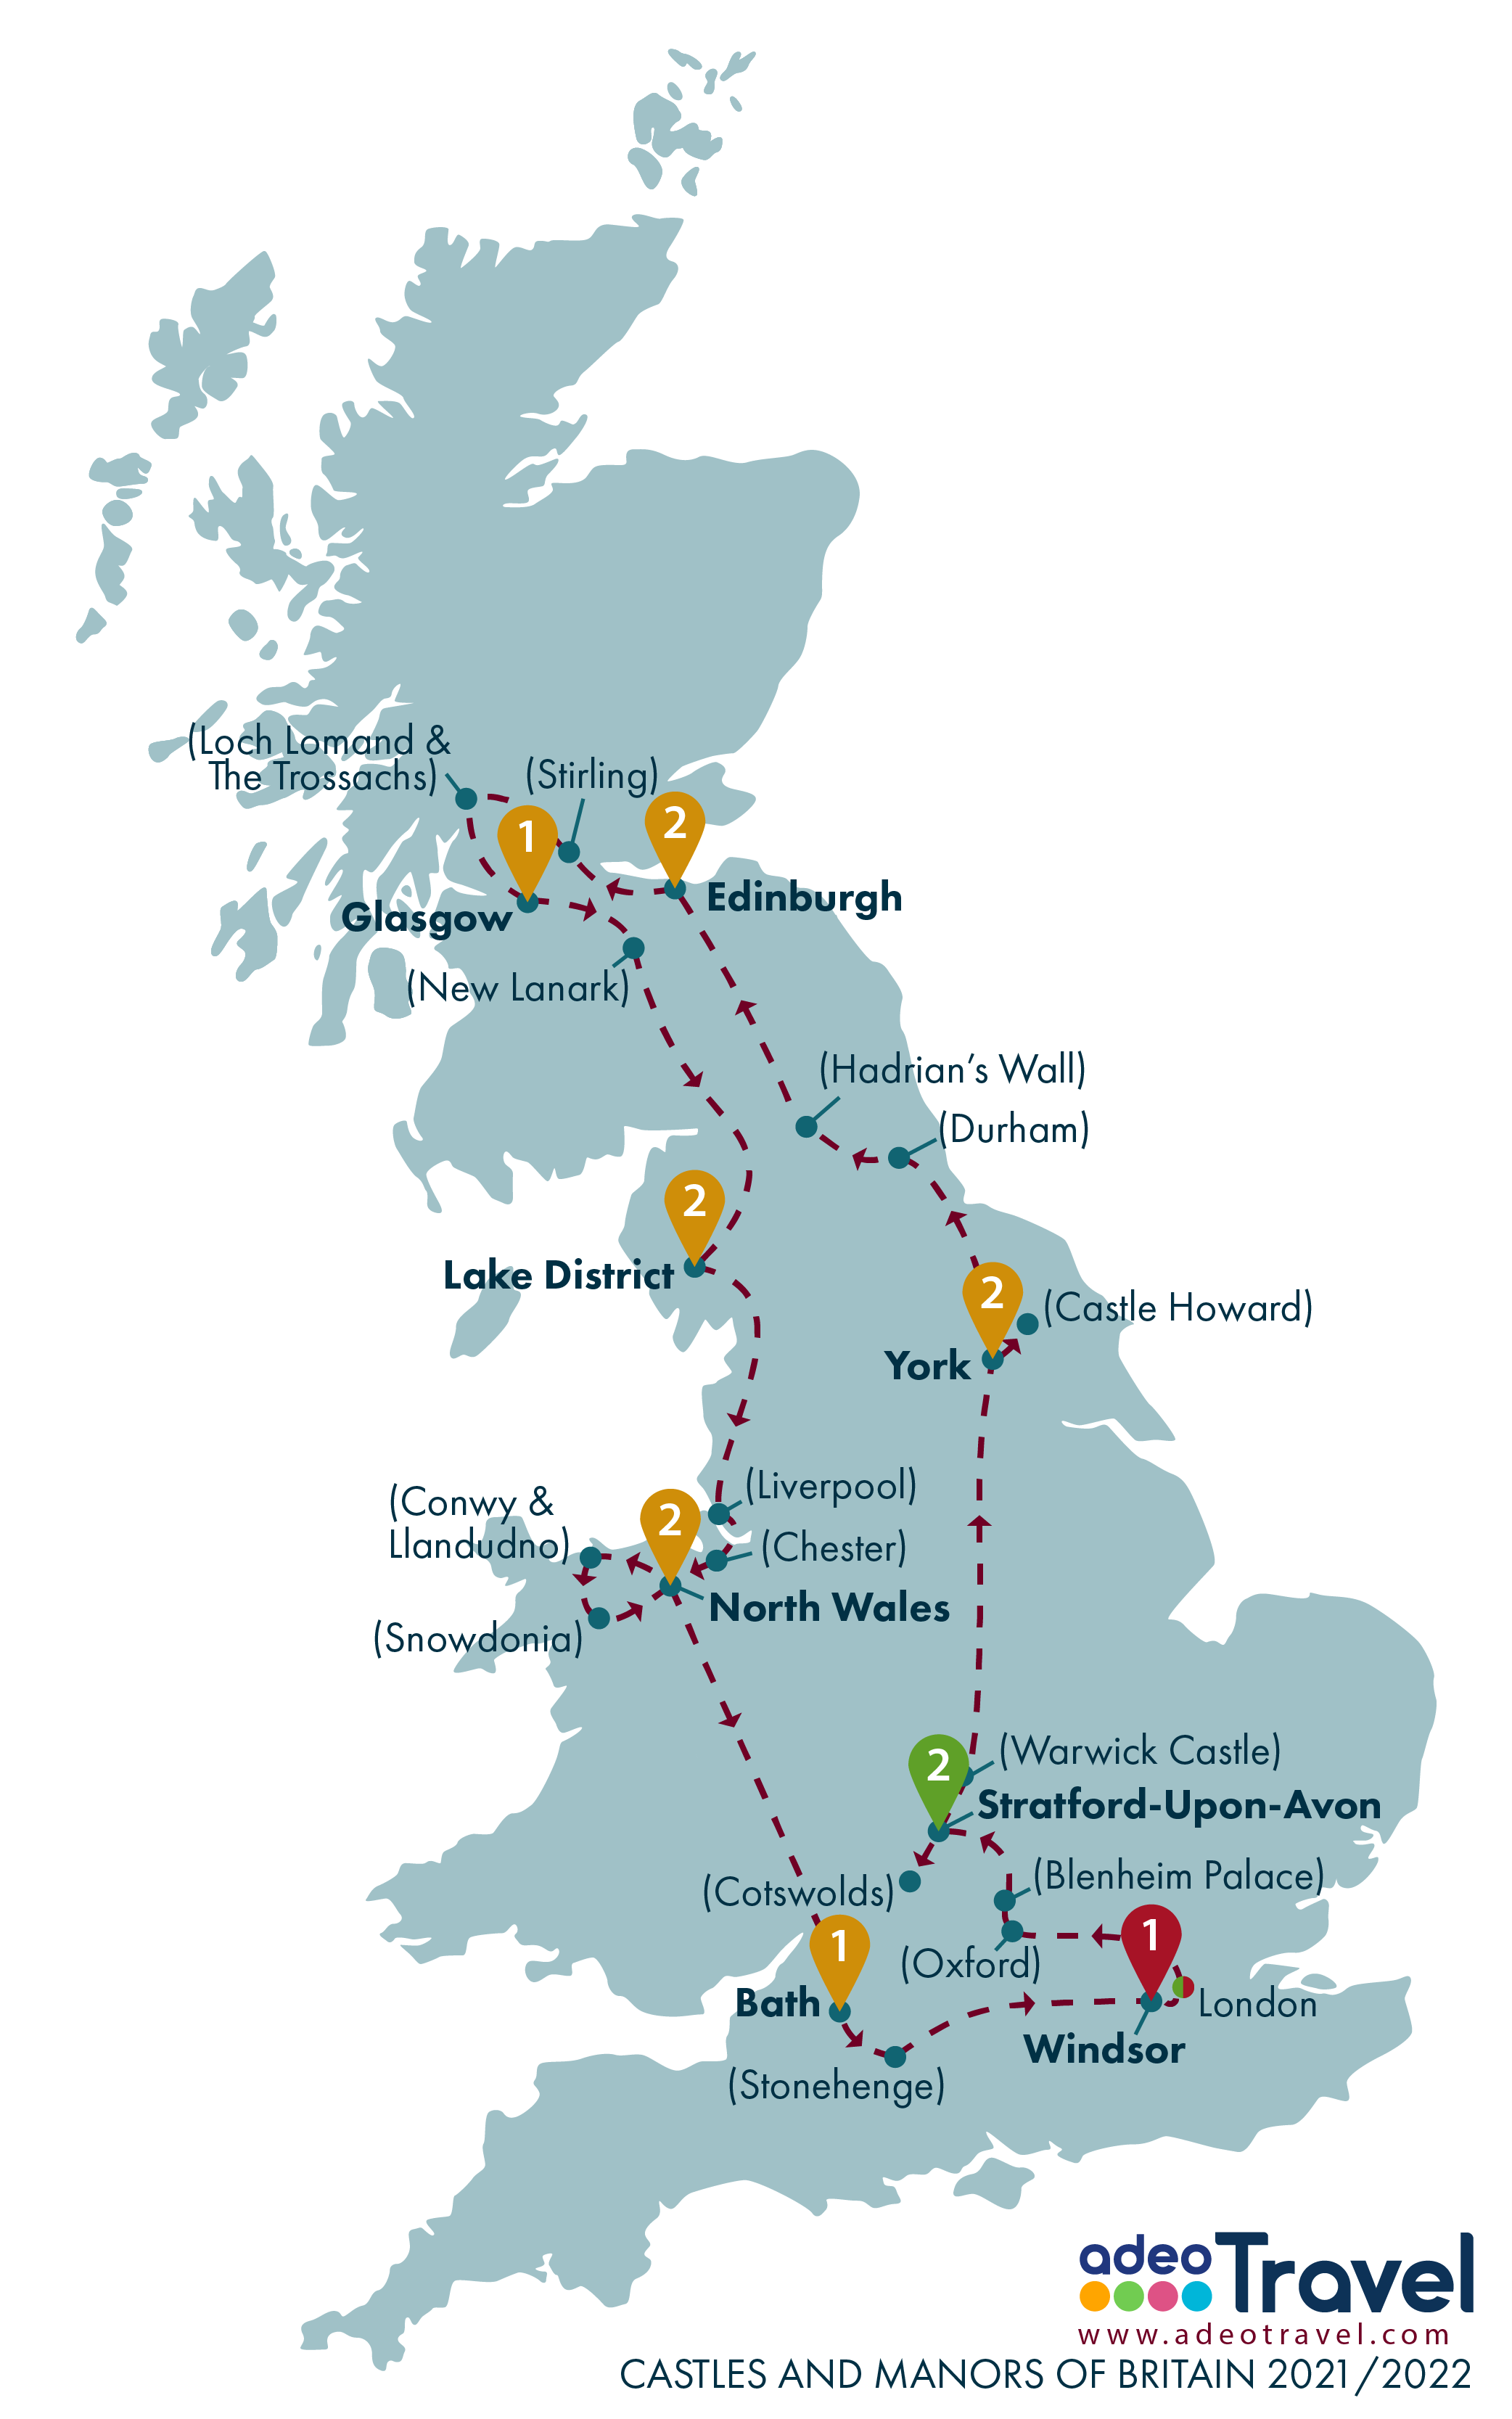 Map - Castles and Manors of Britain 2021 2022